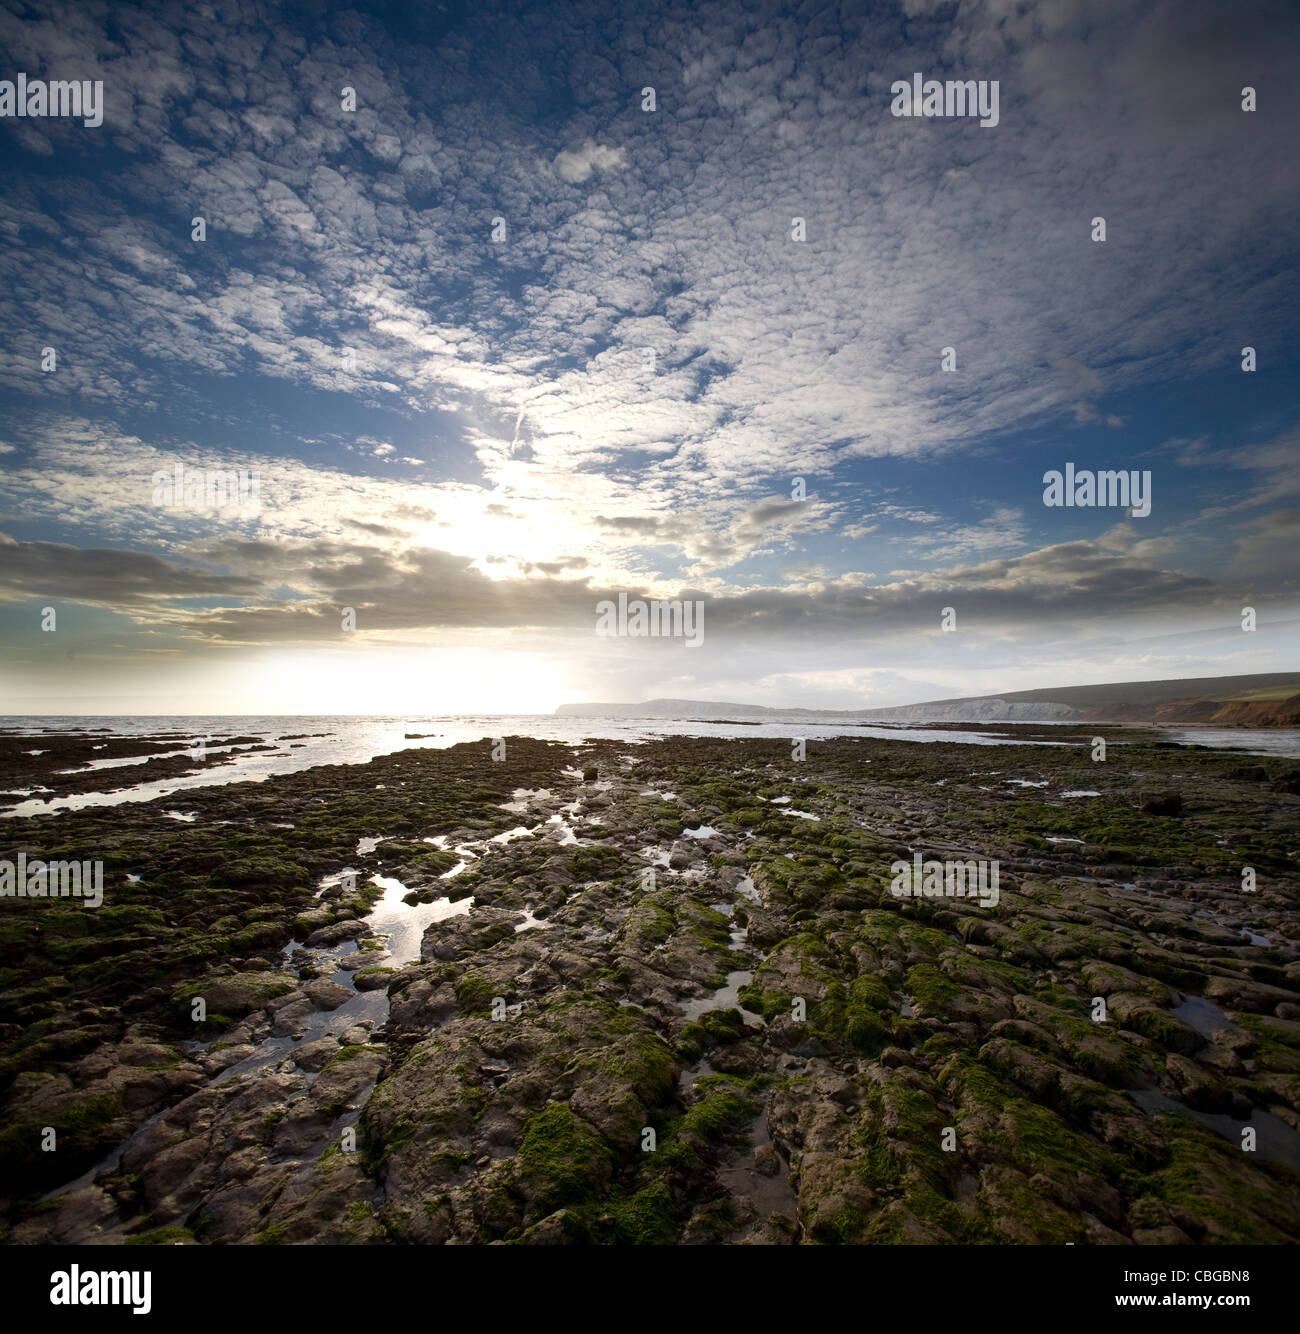 Les fossiles, dinosaure, wealden jumeaux, wessex, vectis, formations, coastall, érosion, Compton Bay, île Photo Stock